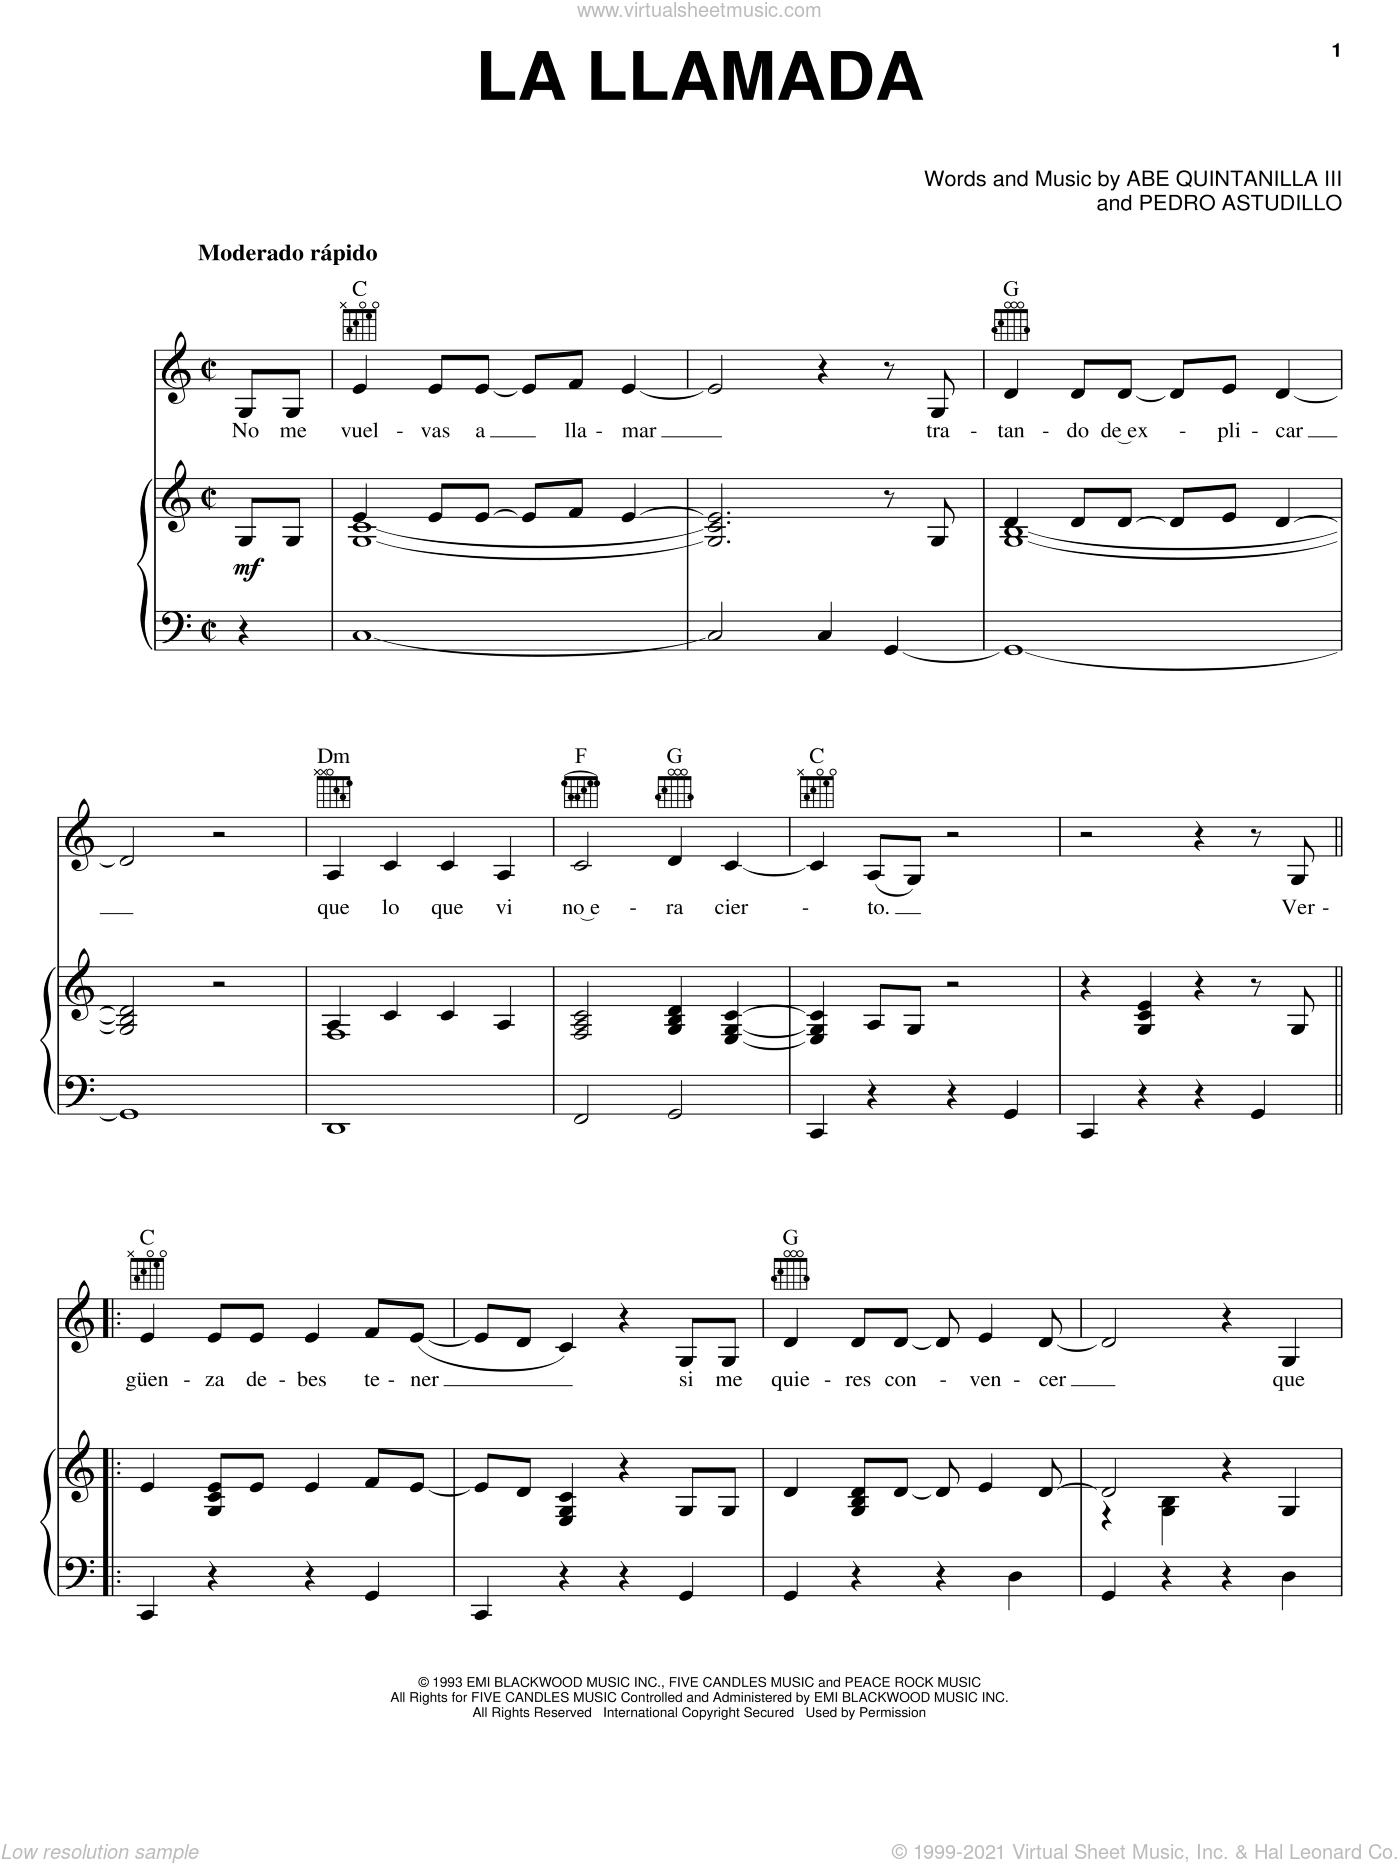 La Llamada sheet music for voice, piano or guitar by Pete Astudillo